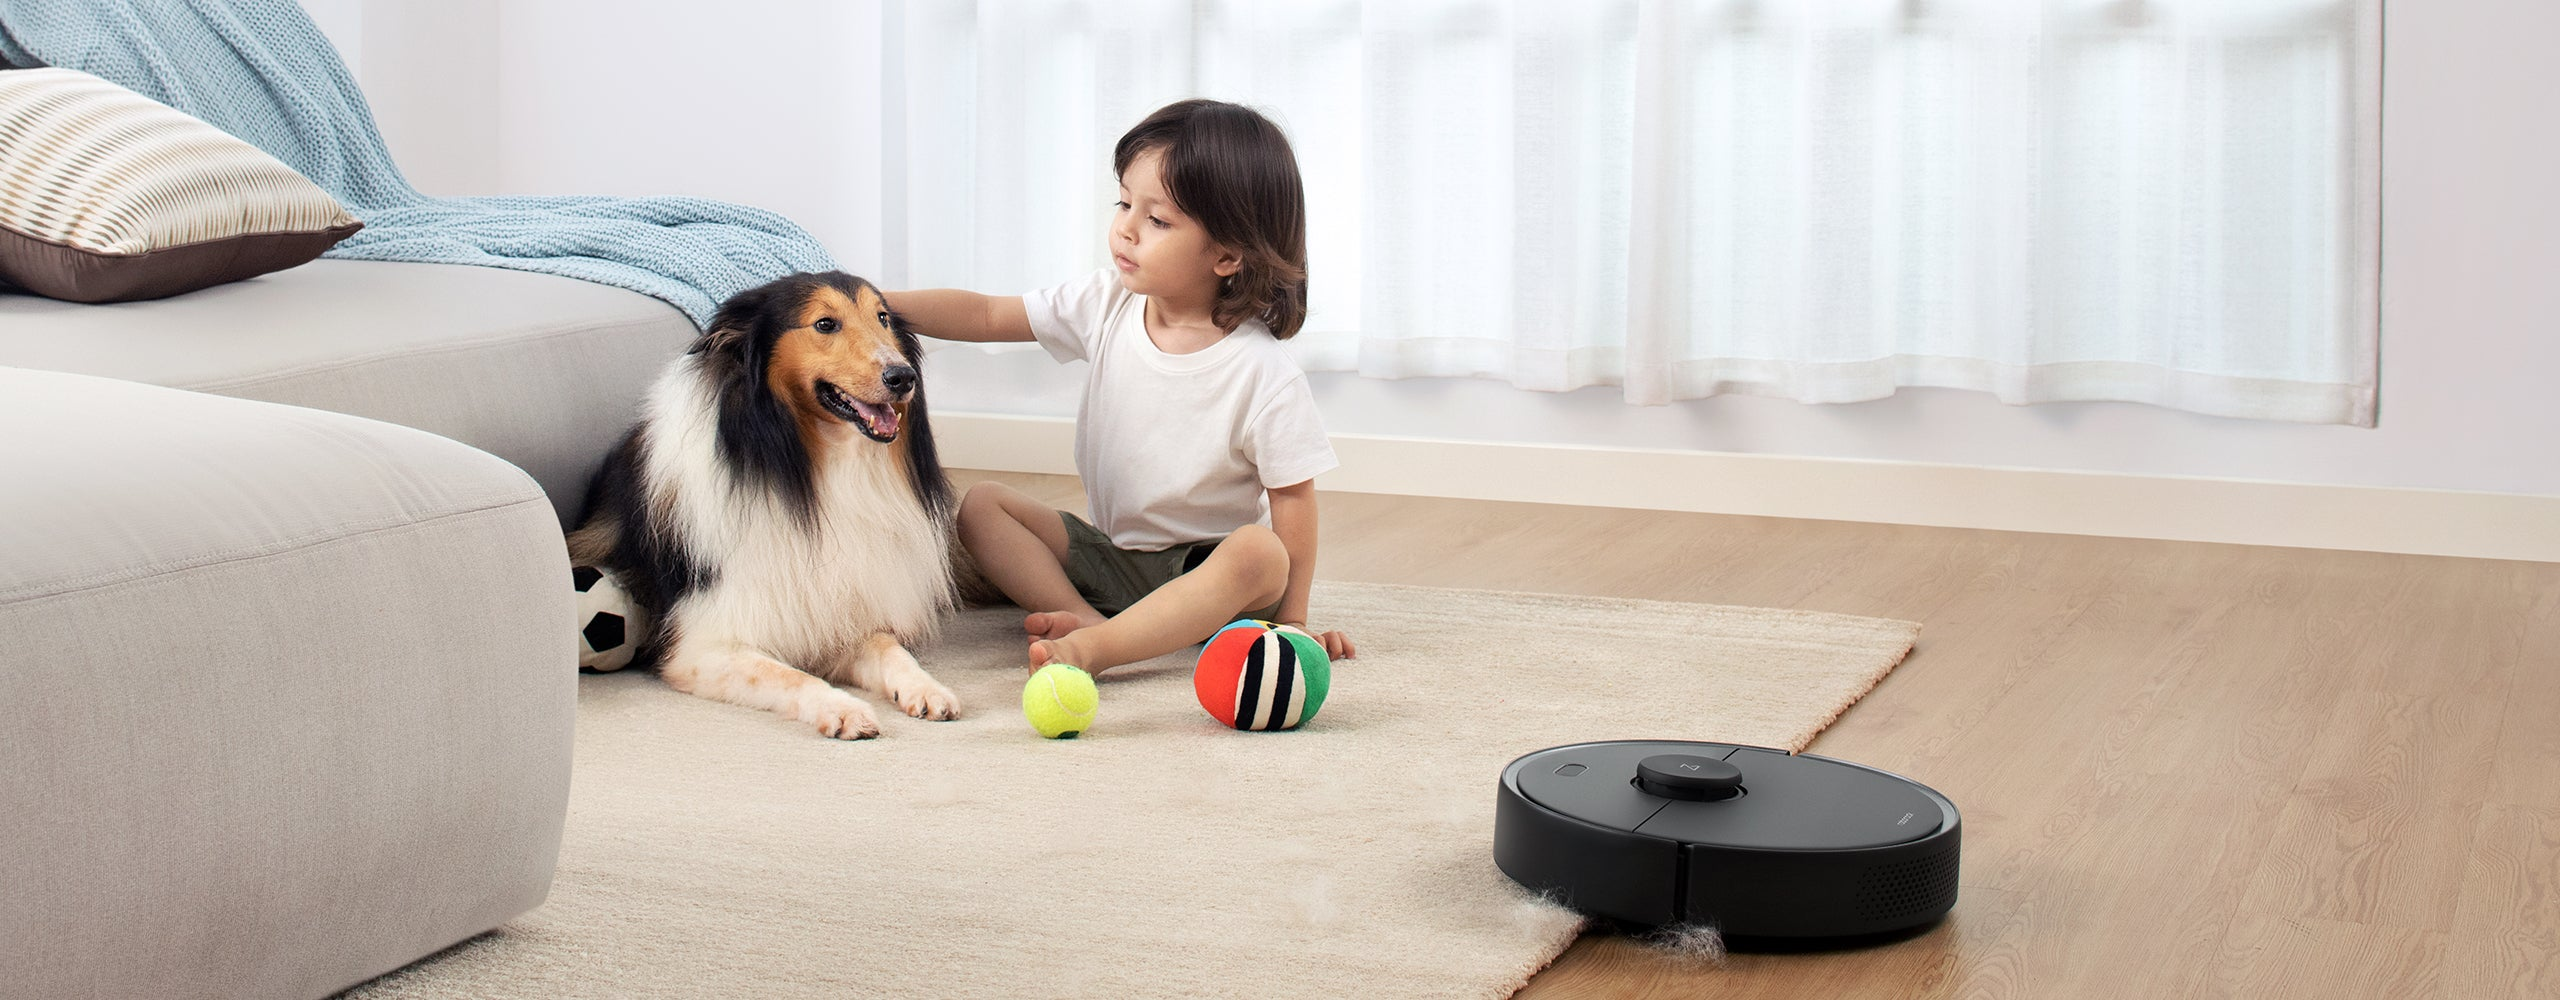 Roborock S4 Max breathtaking suction can pulling dirt off wooden floor and carpet